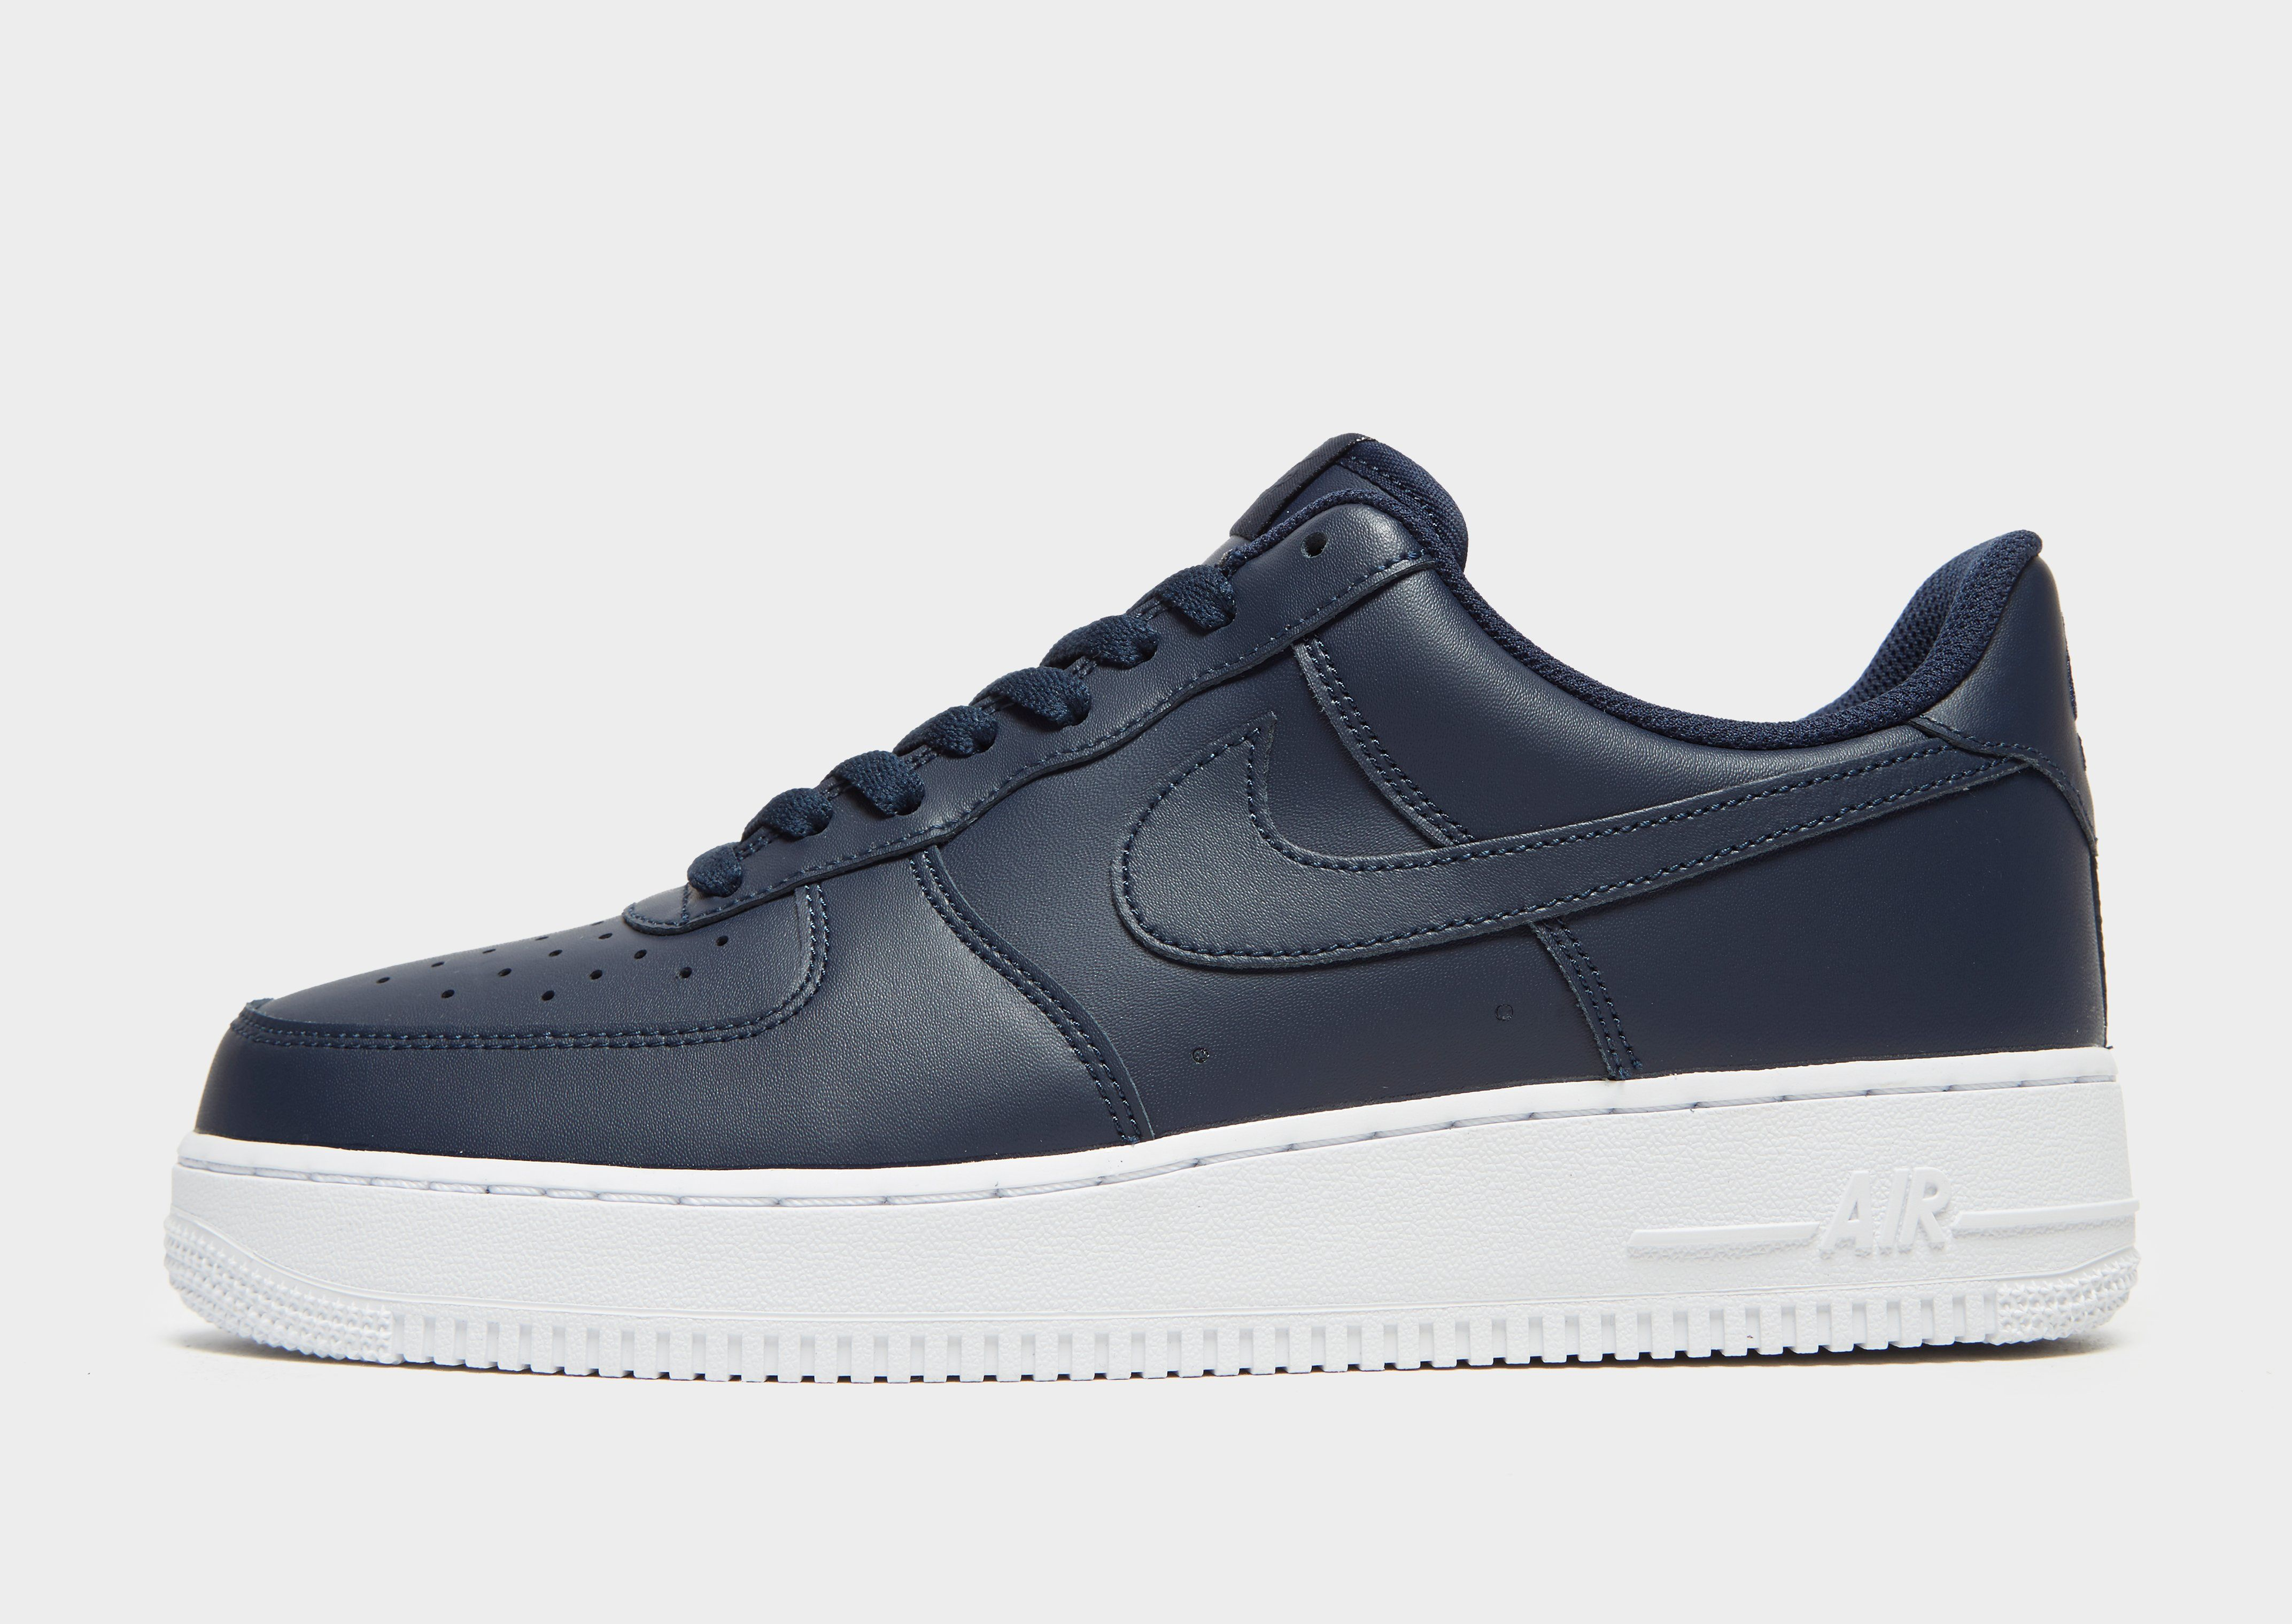 official photos 33663 22db7 Nike Air Force 1 07 Men's Shoe | JD Sports